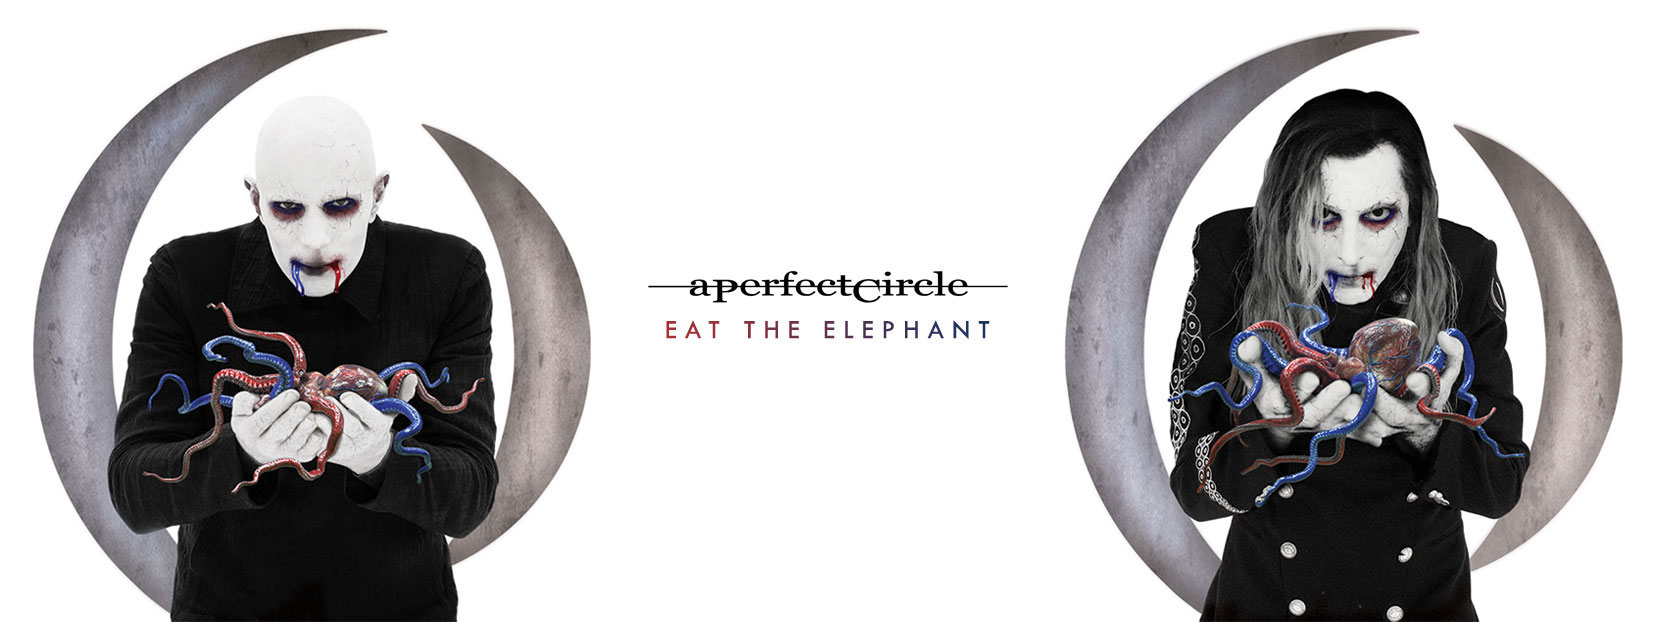 Perfect Circle Tour Dates 2020 Home